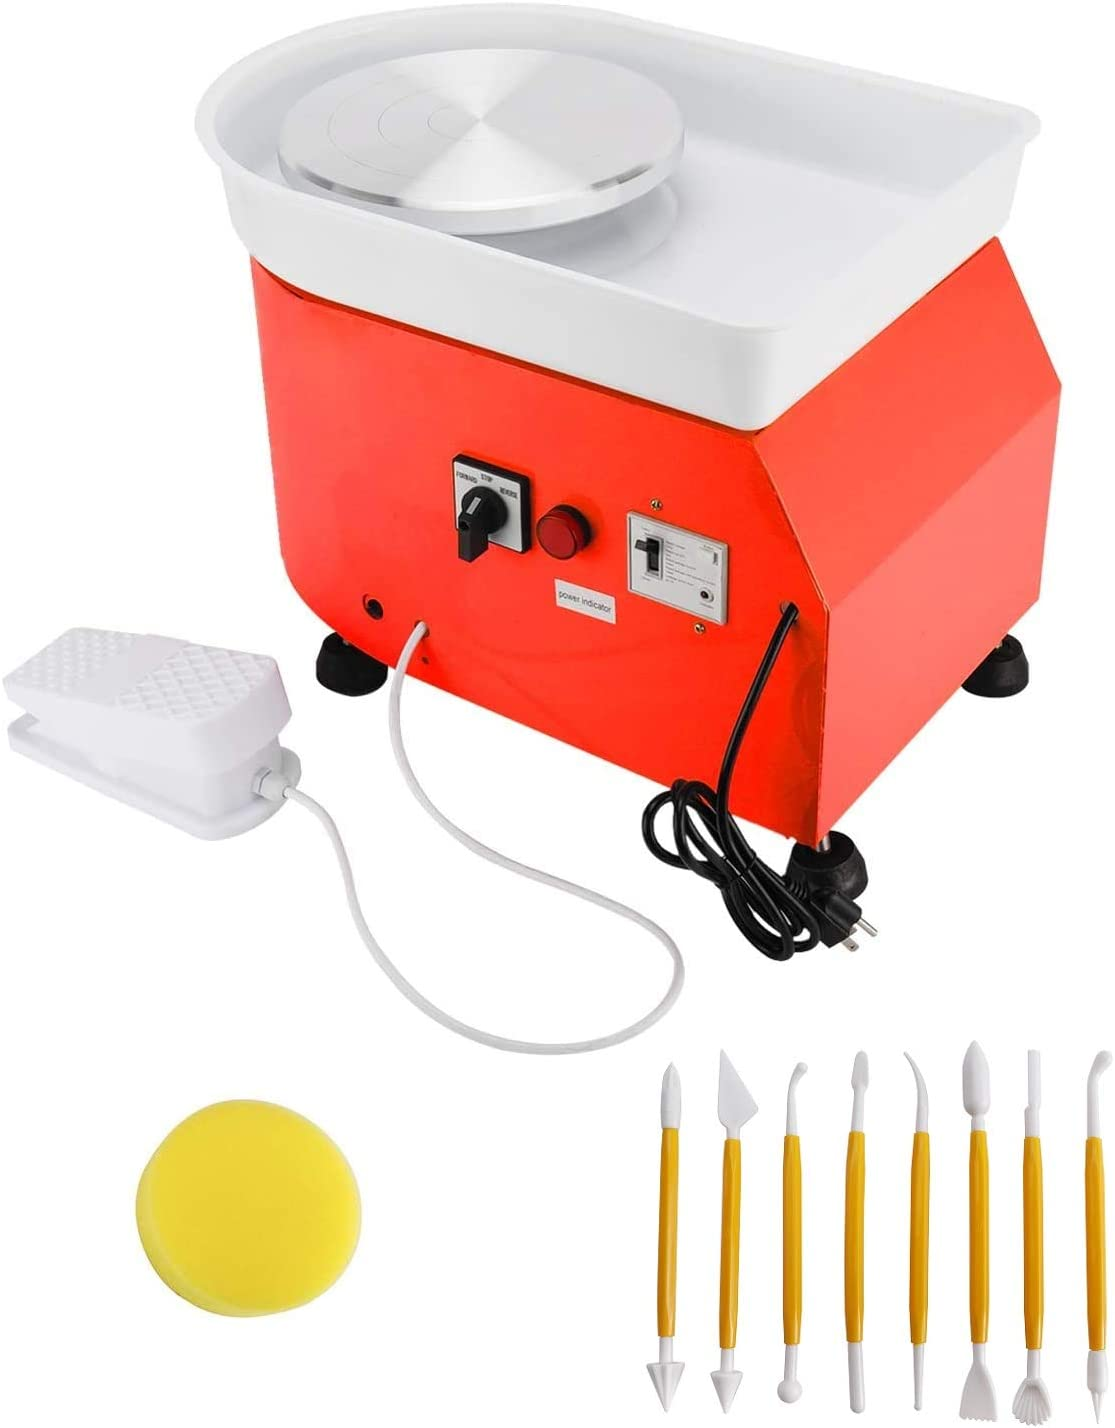 YaeKoo Electric Pottery Wheel Machine 25cm (9.8'') 350W Orange Clay Ceramic Work Forming Machine with Foot Pedal and Art Craft Shaping Tools